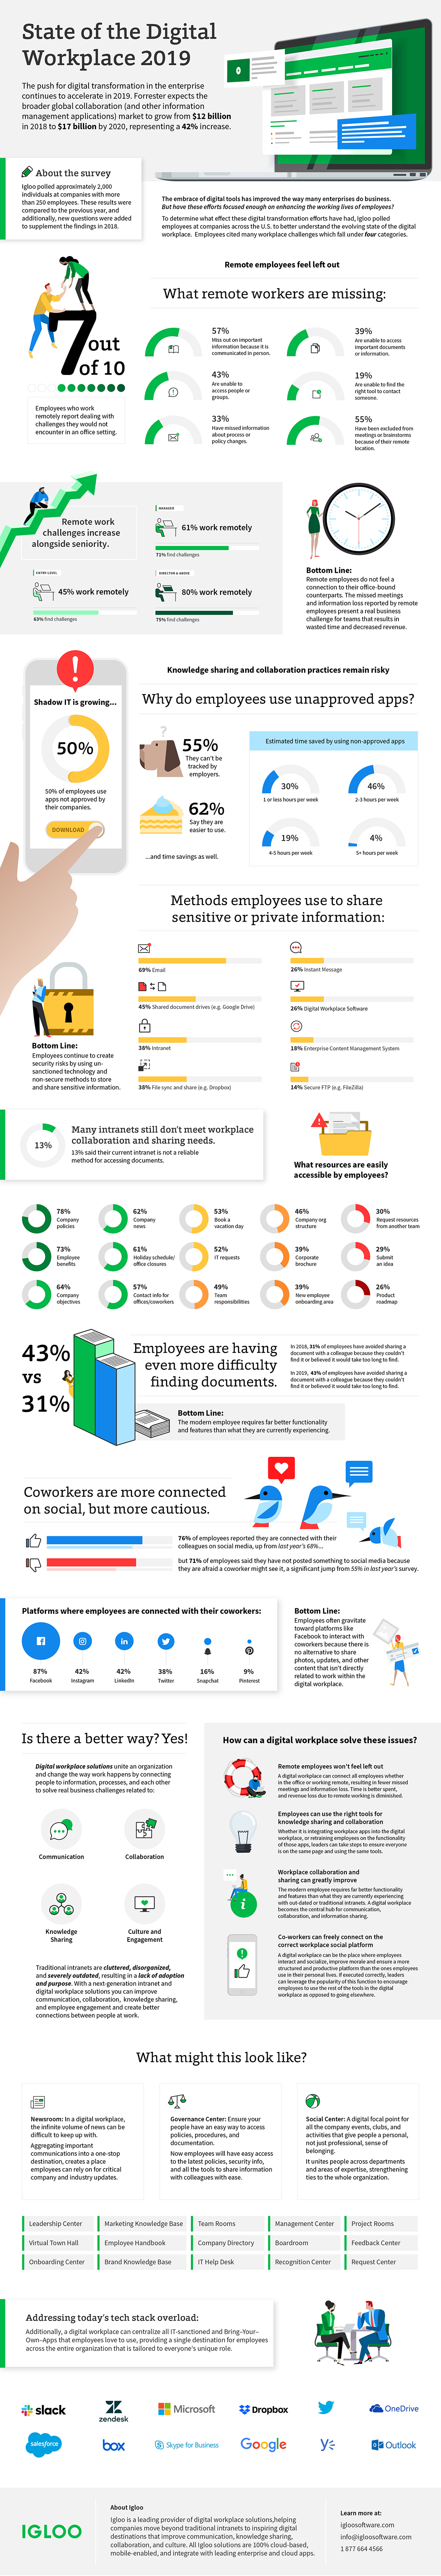 State of the Digital Workplace infographic